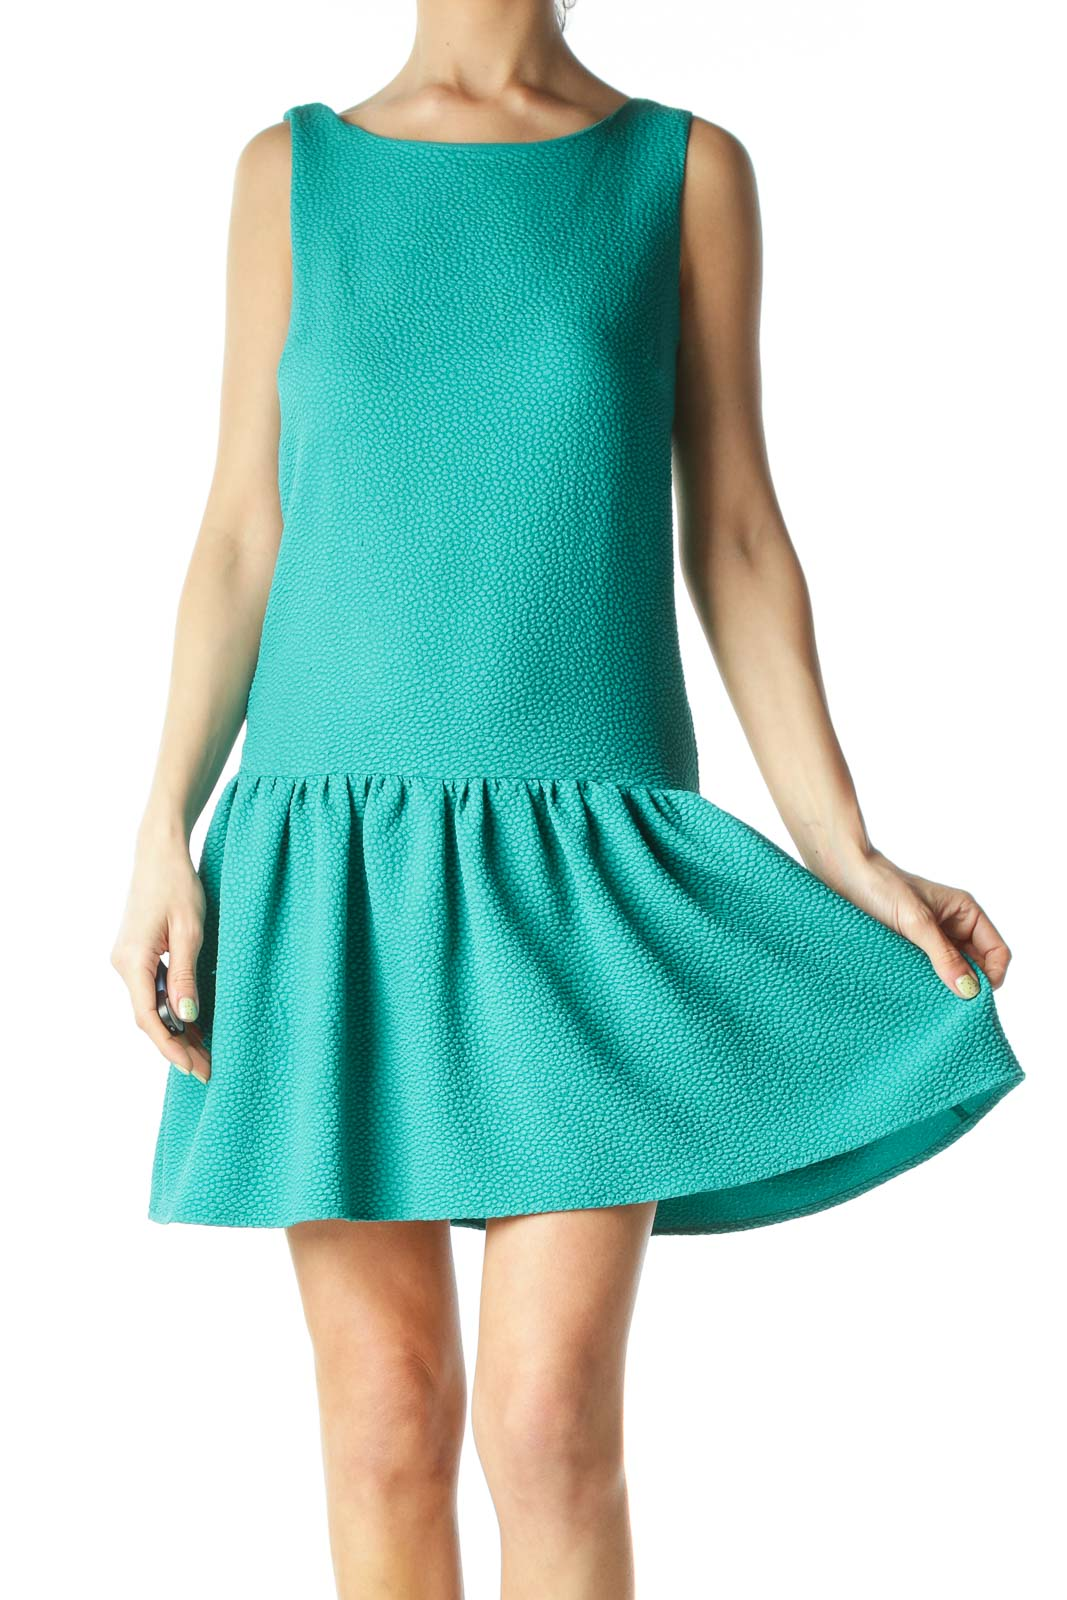 Green Textured Flared-Bottom Sleeveless Day Dress